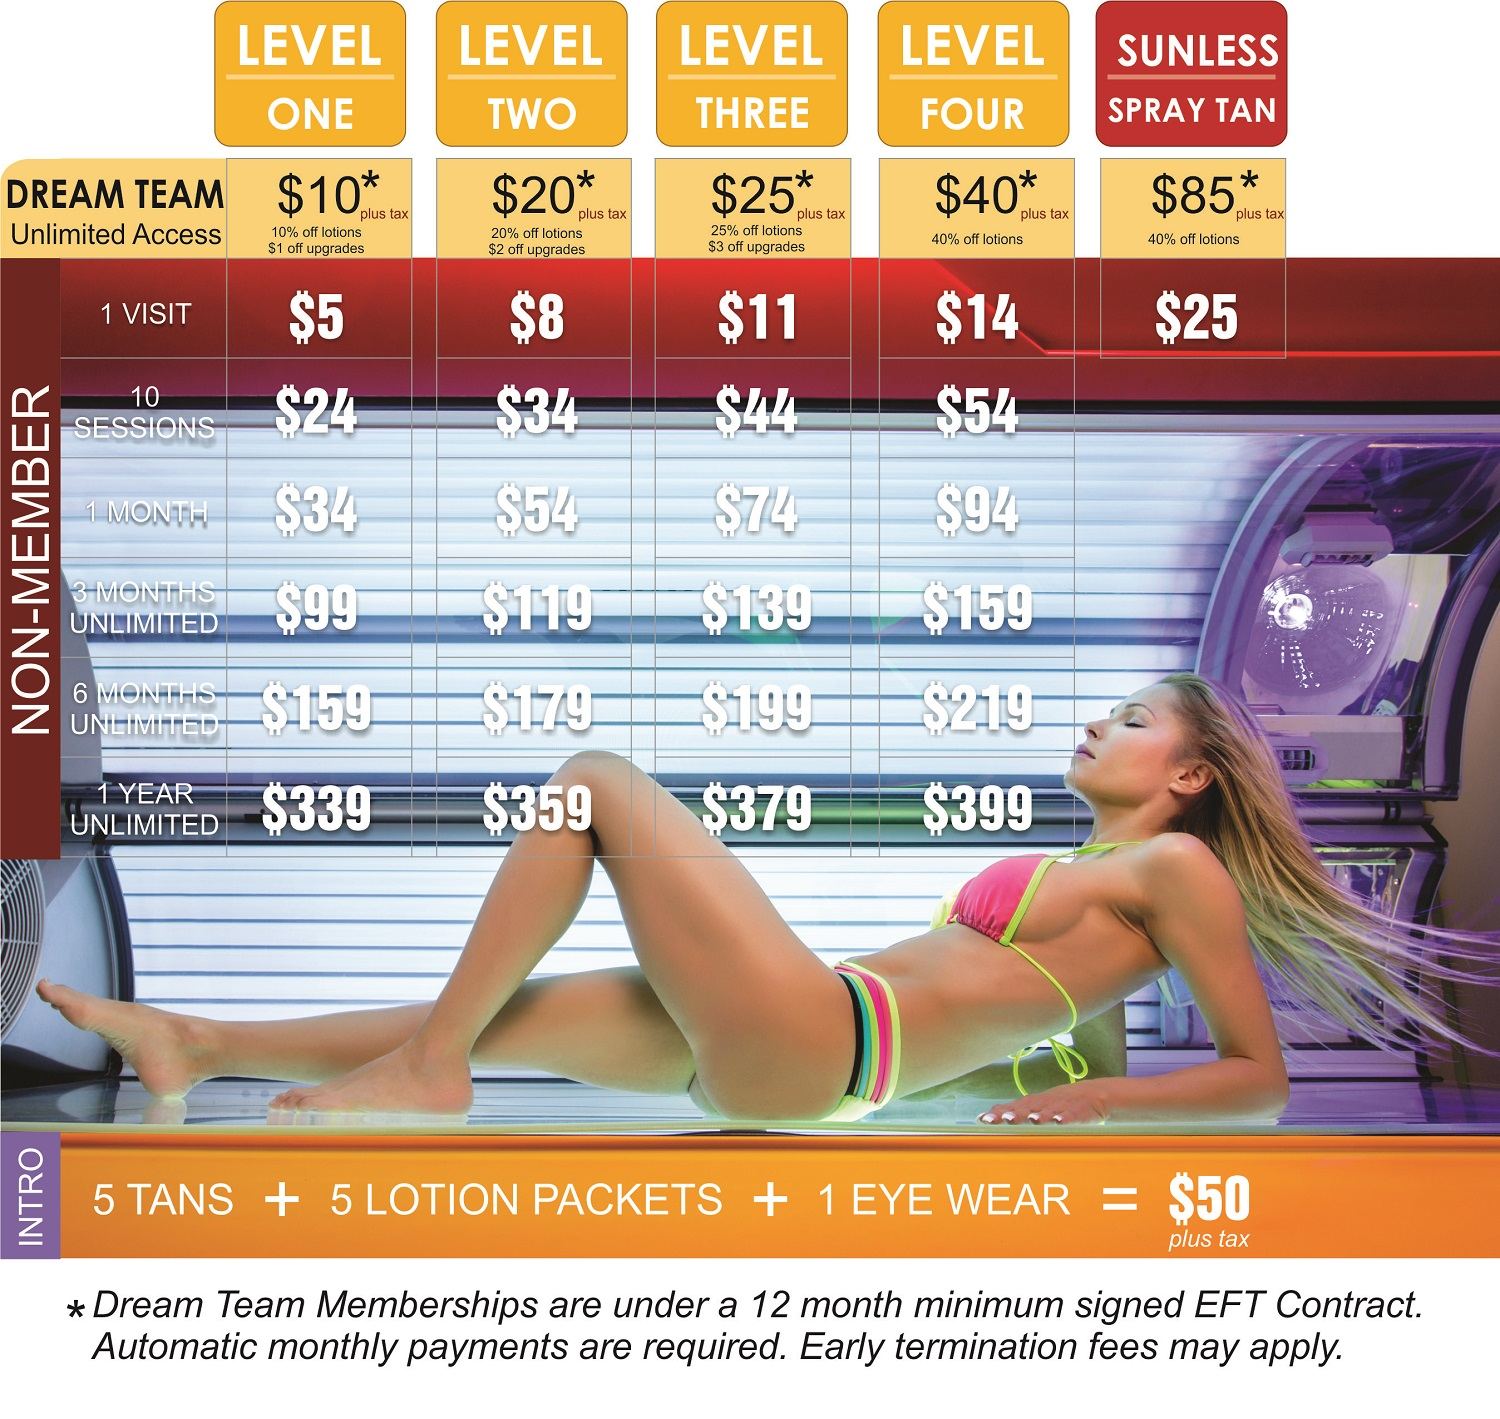 New pricing for tanning sessions, monthly, and dream team tanning!